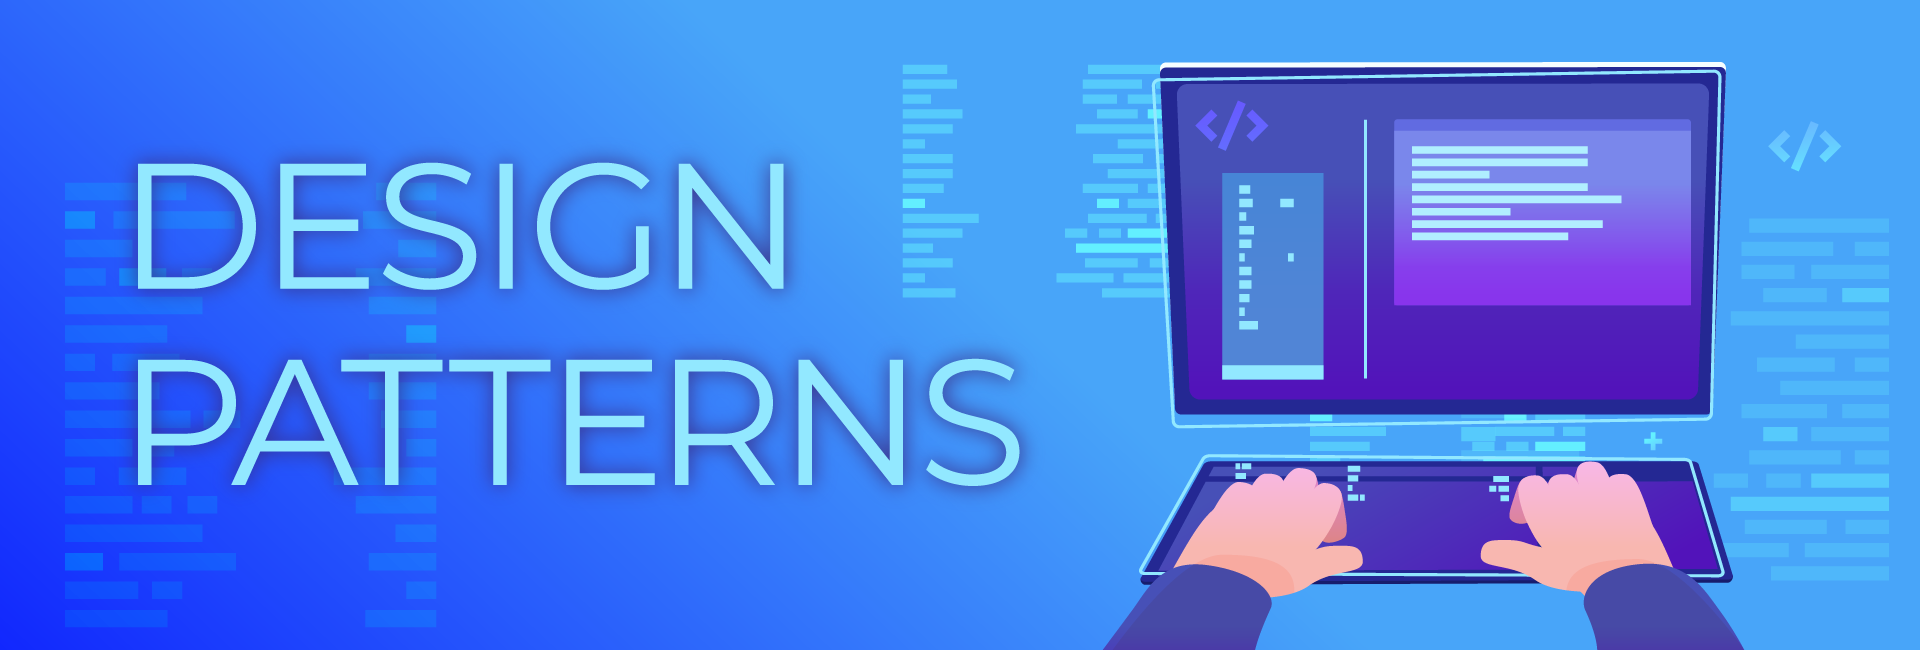 Design patterns overview